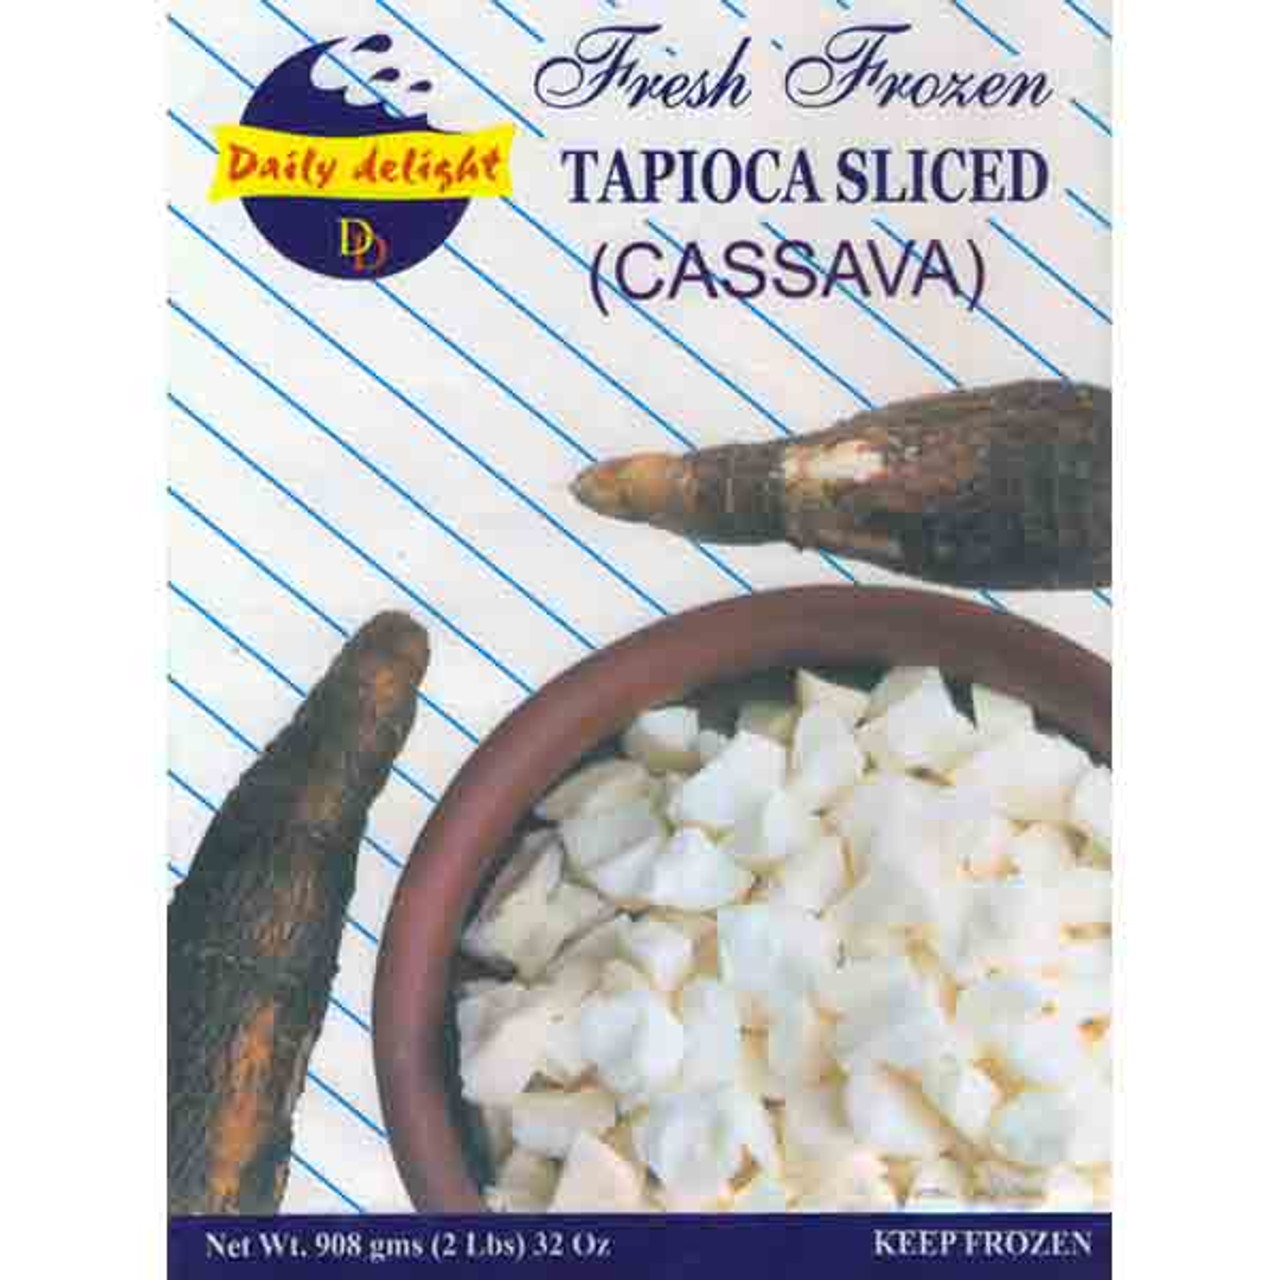 Daily Delight - Tapioca Sliced 2lb - 2 l